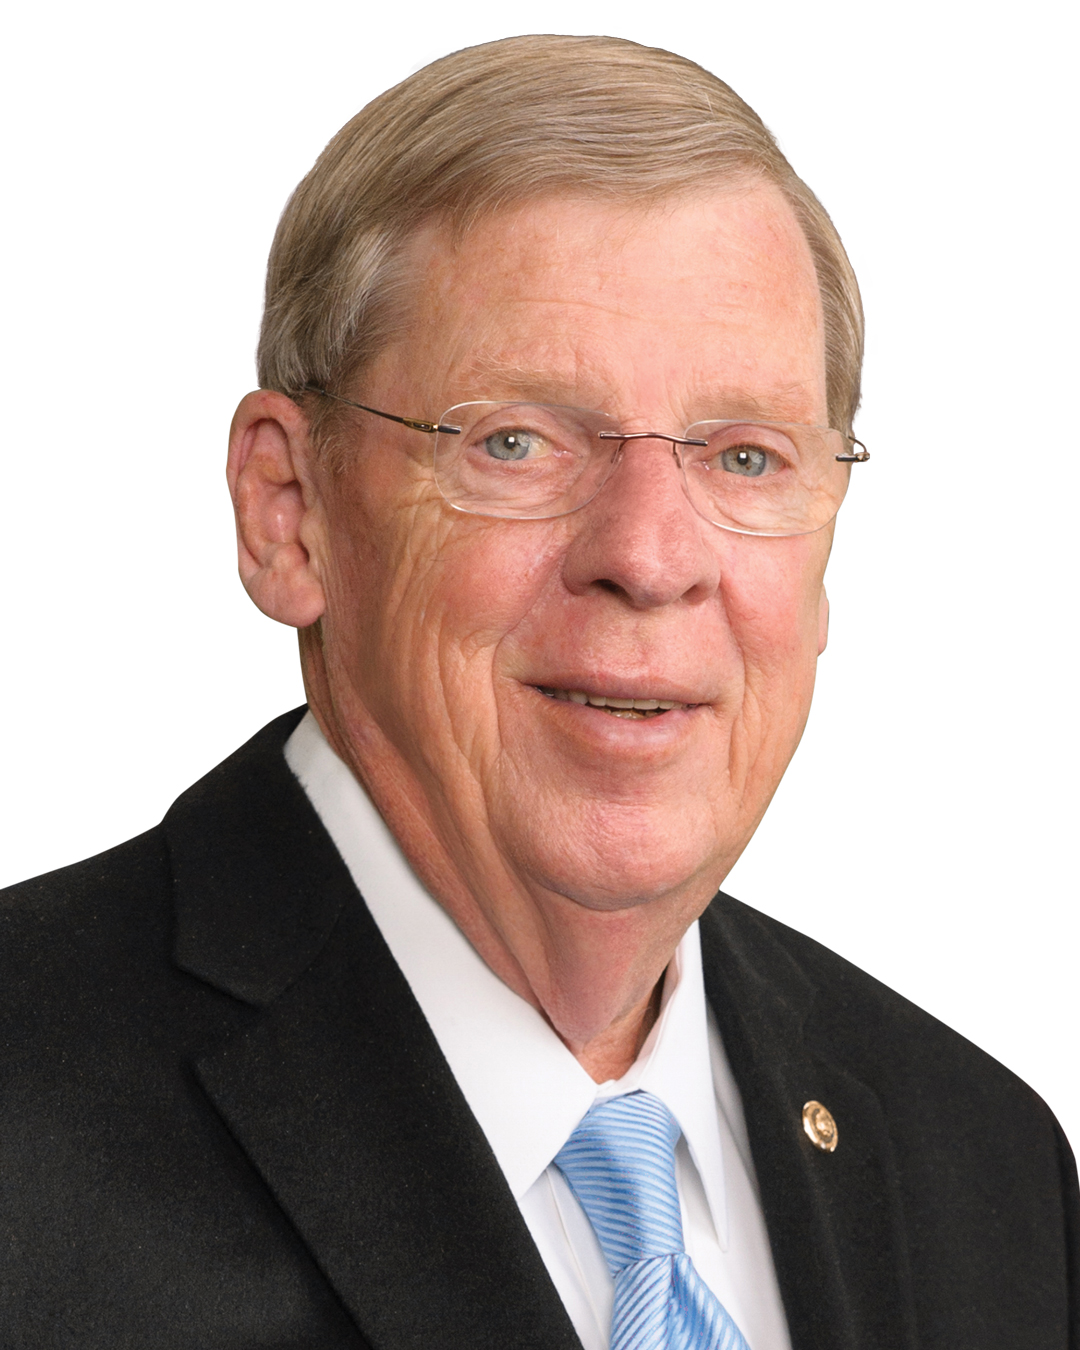 Atlanta 500: Johnny Isakson